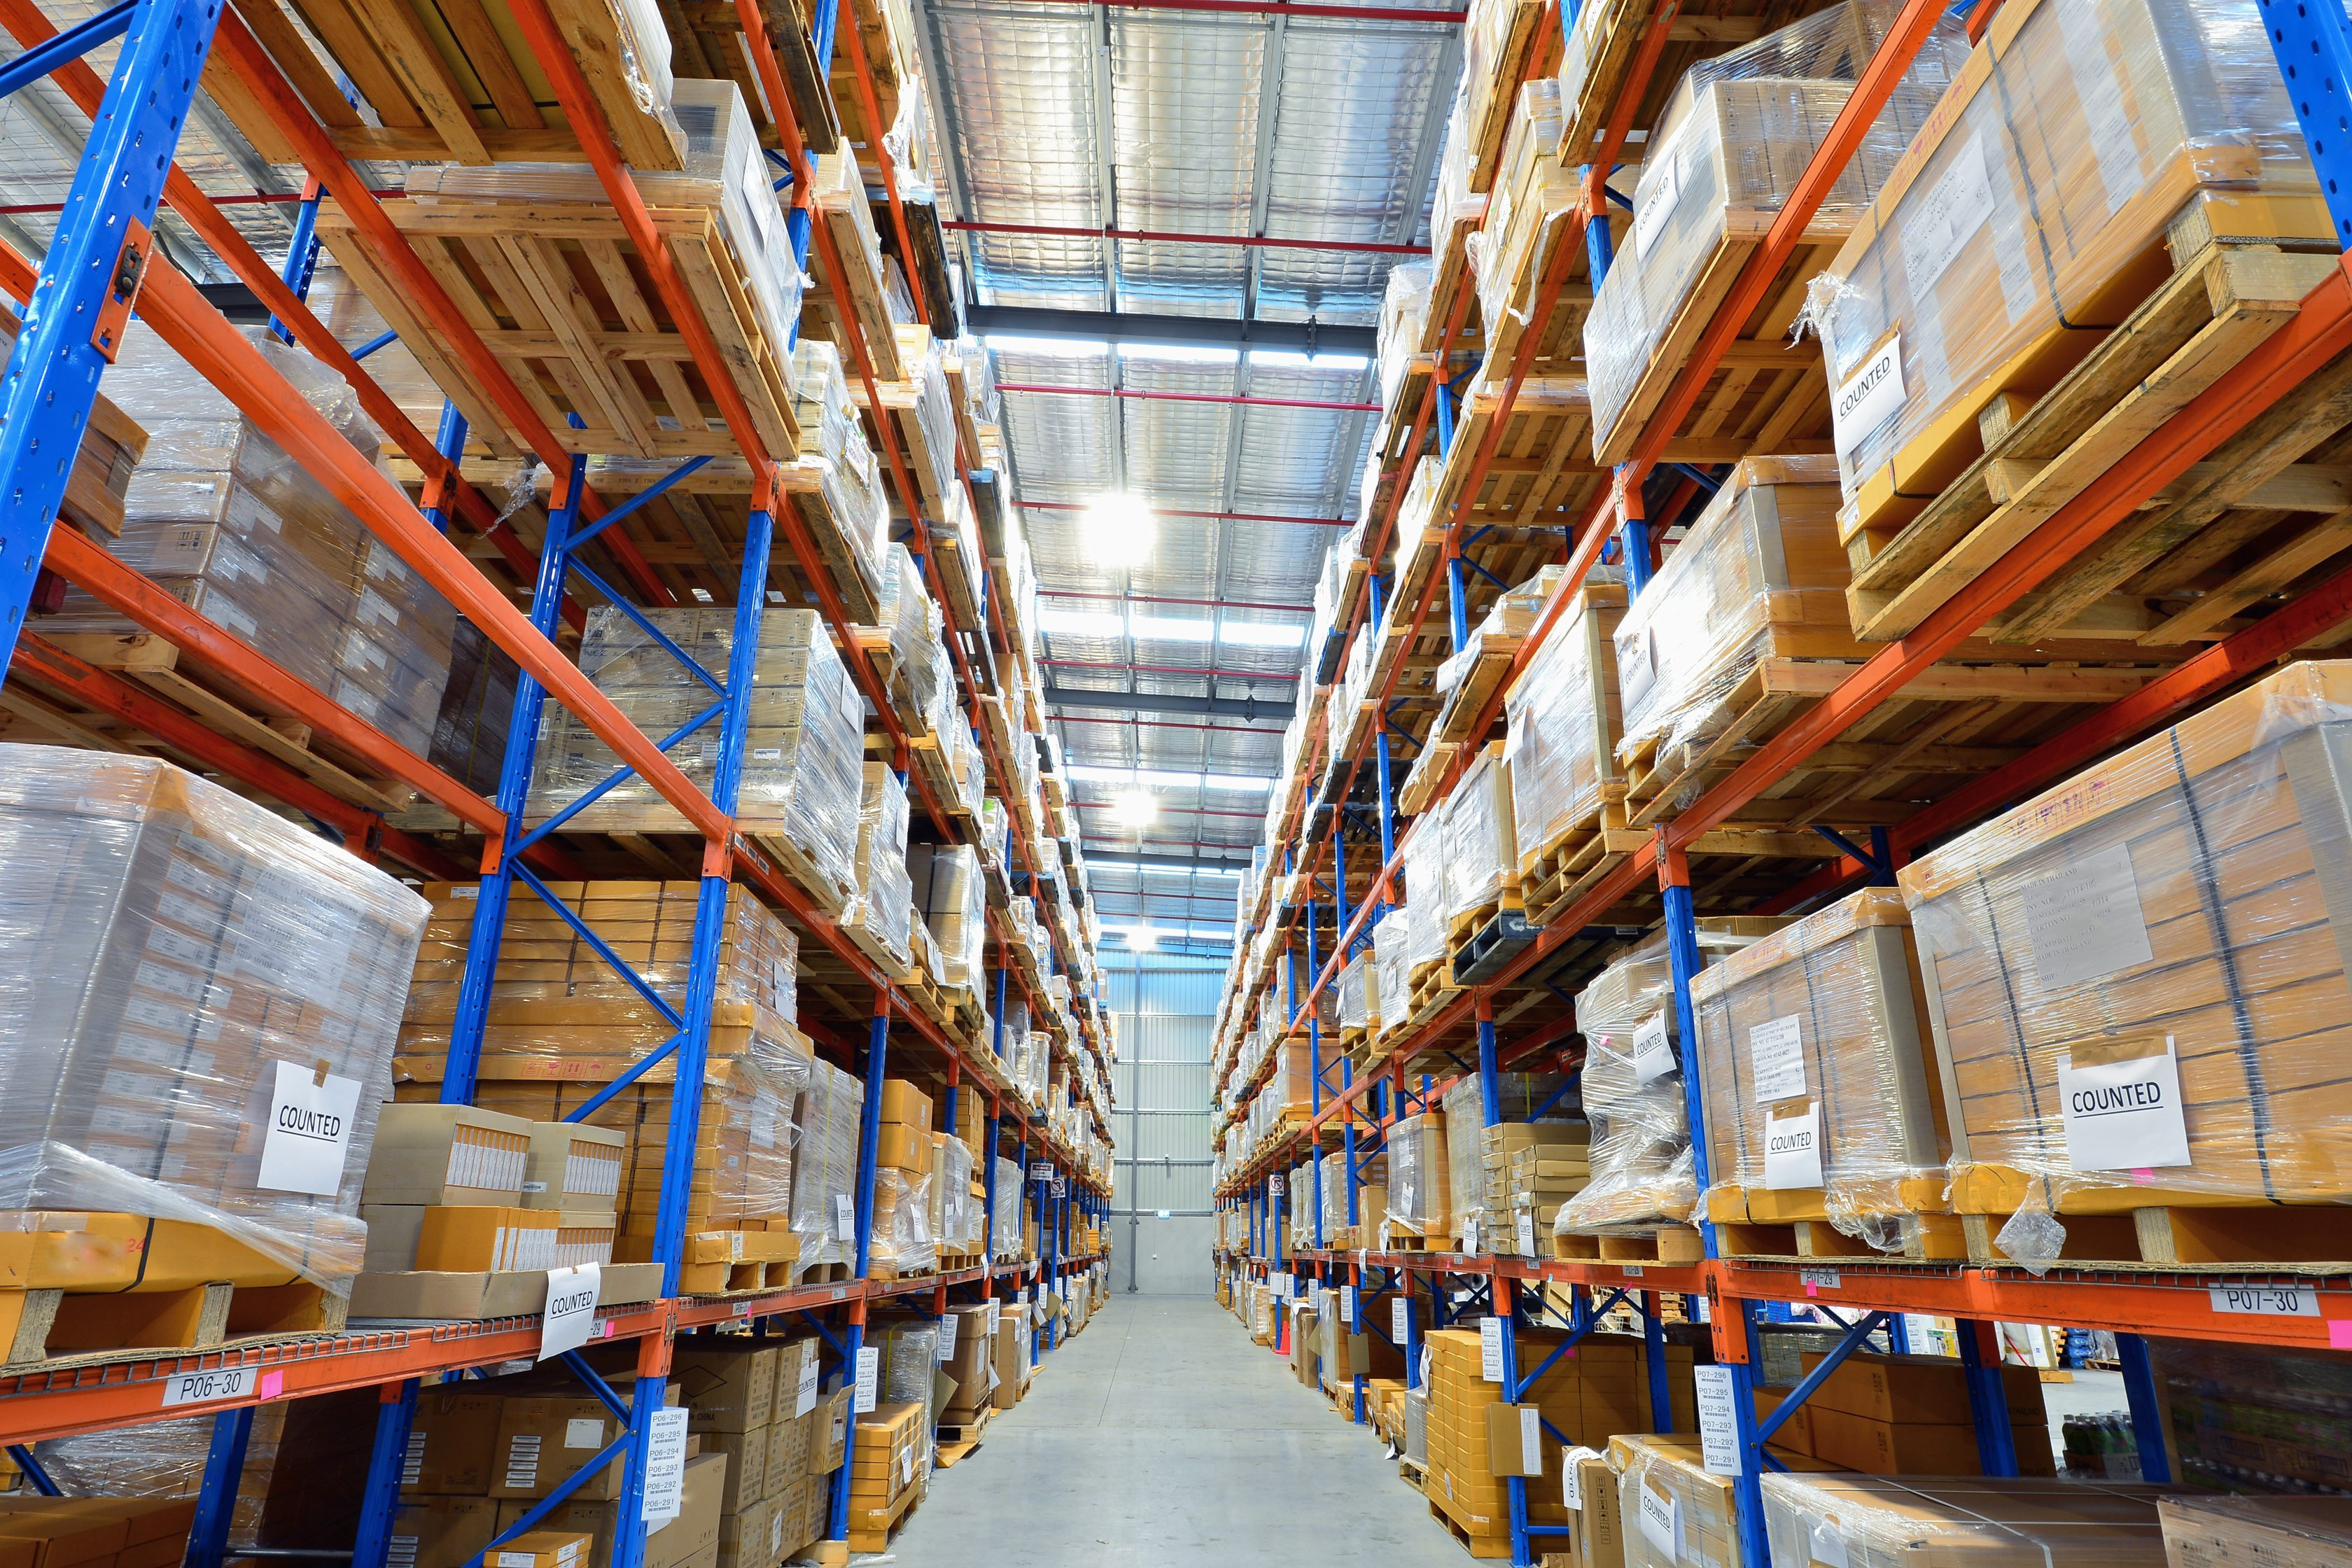 We manage your assets and inventory while you are deciding what to do with it